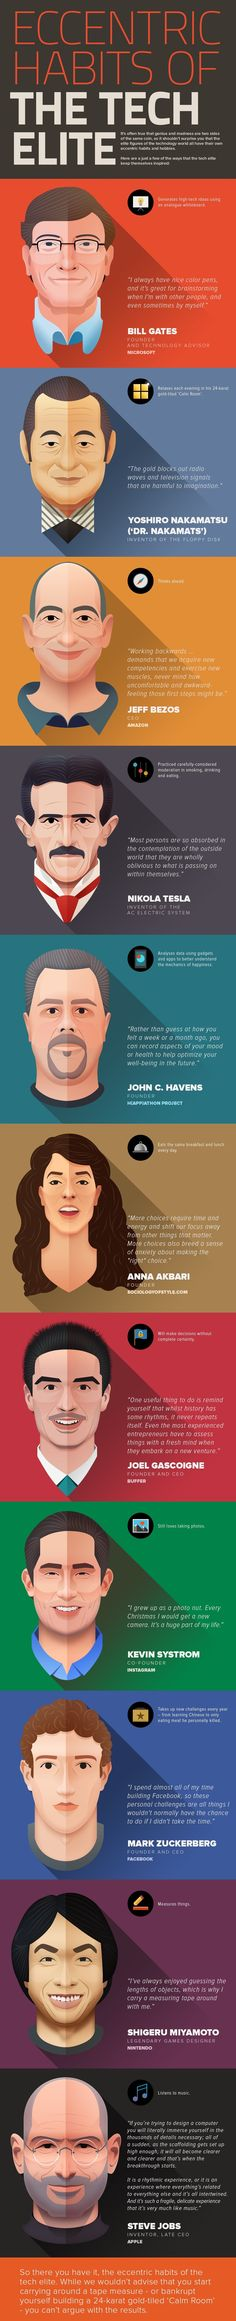 Infographic: The Eccentric Habits Of Steve Jobs, Mark Zuckerberg And More